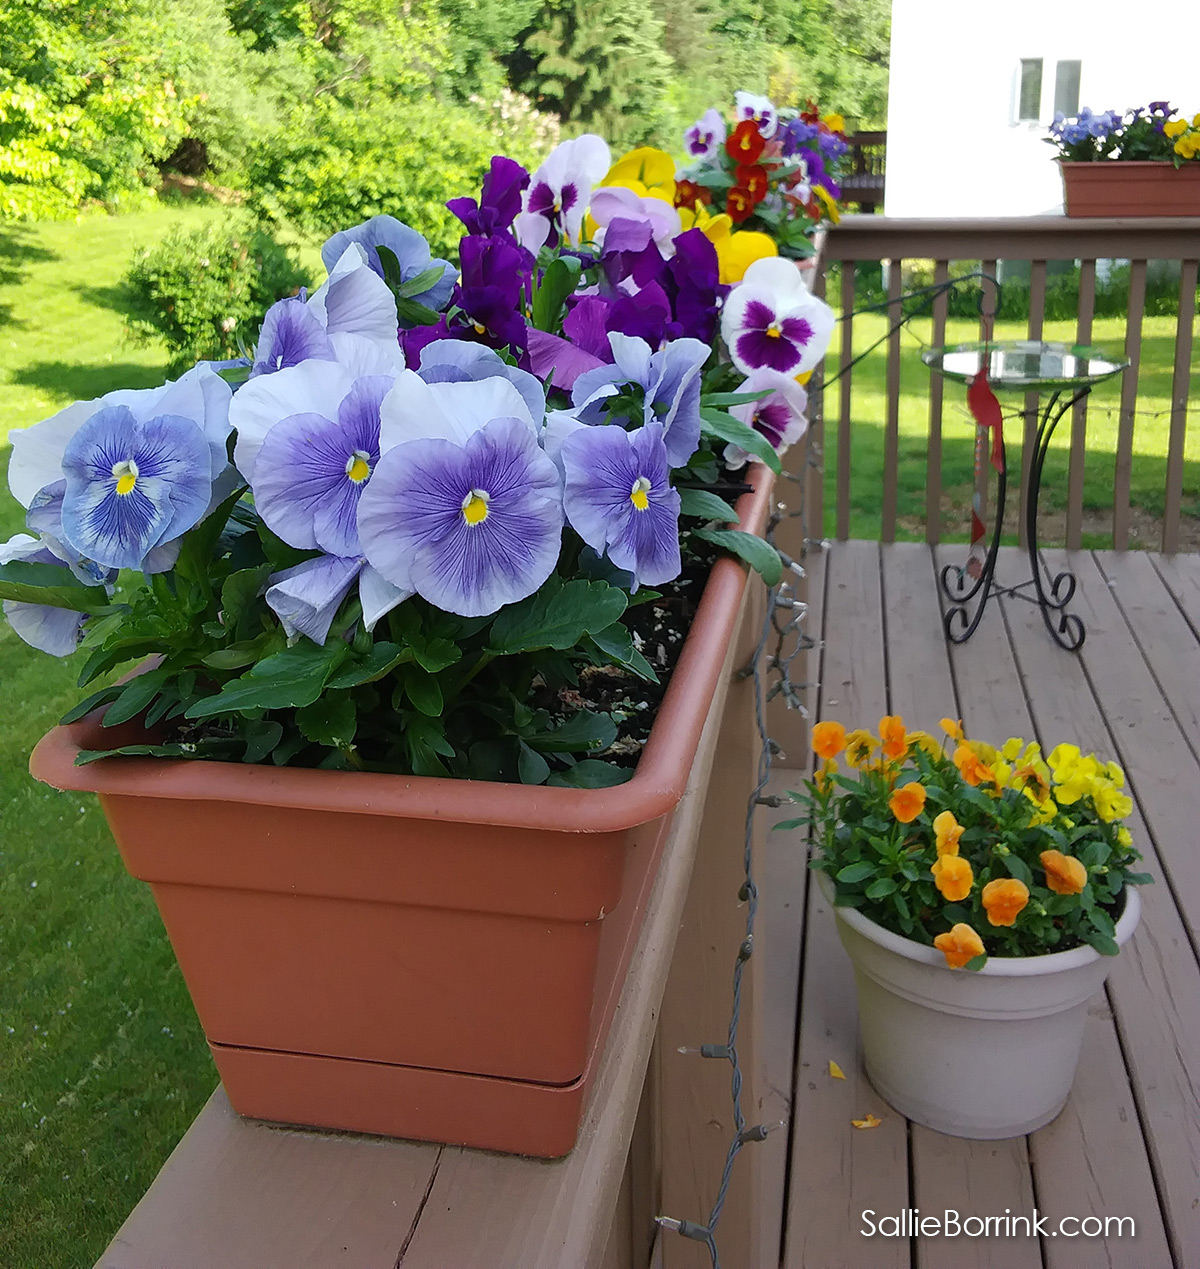 Colorful Pansies in Pots and Planters on the Deck